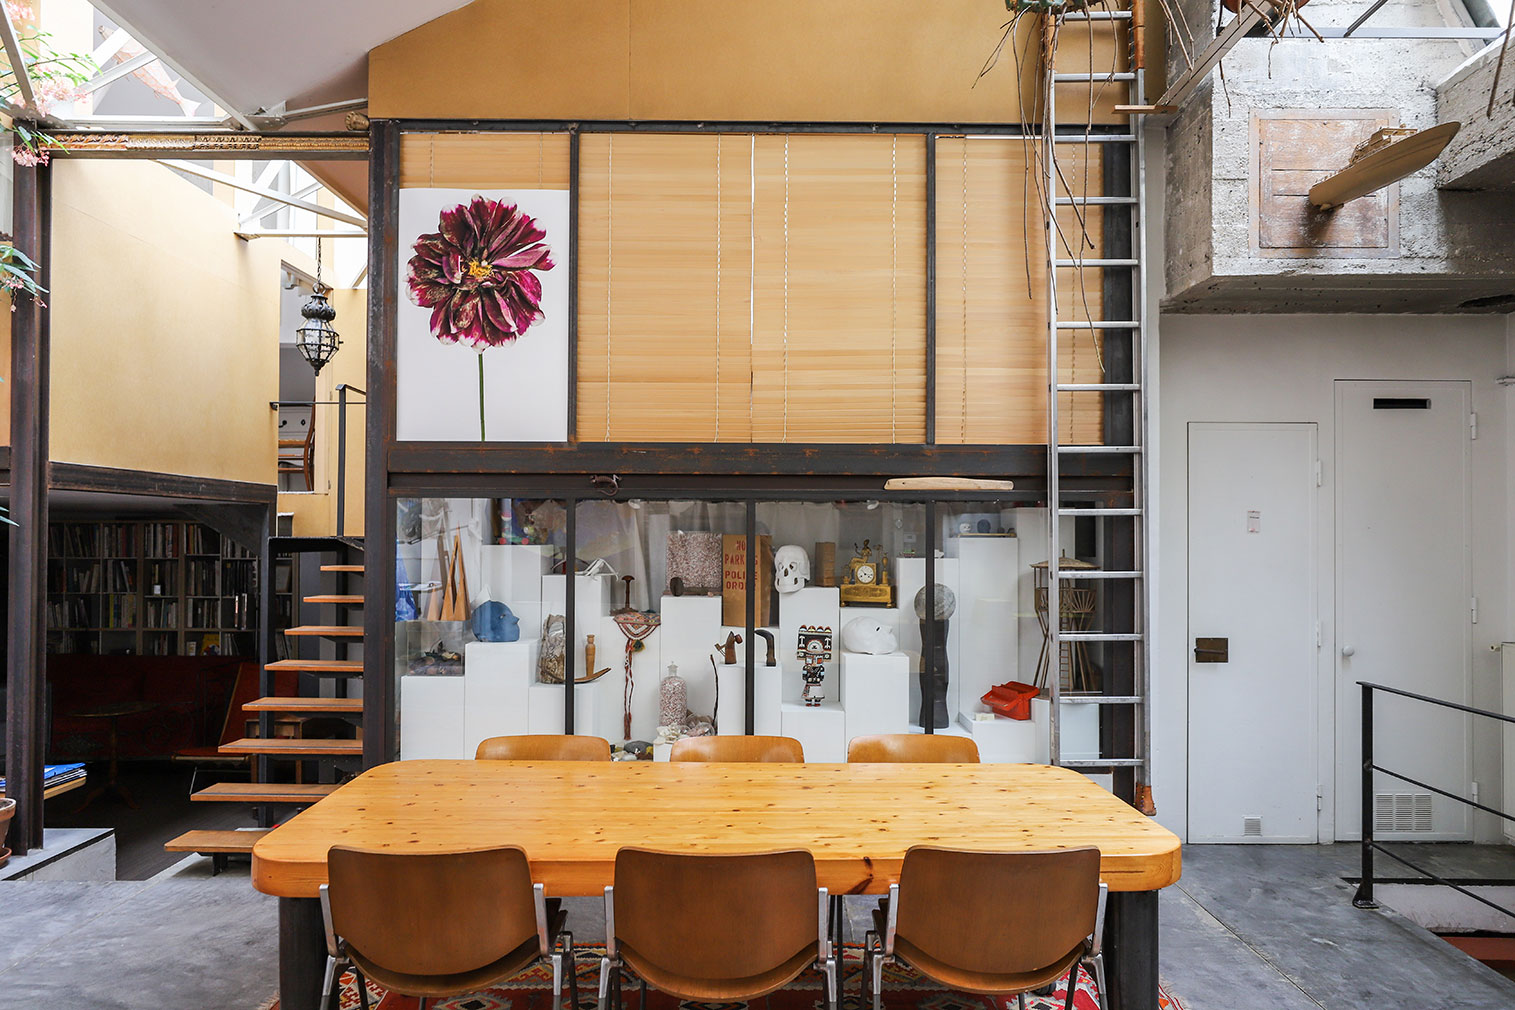 Converted foundry loft offers industrial living in Paris